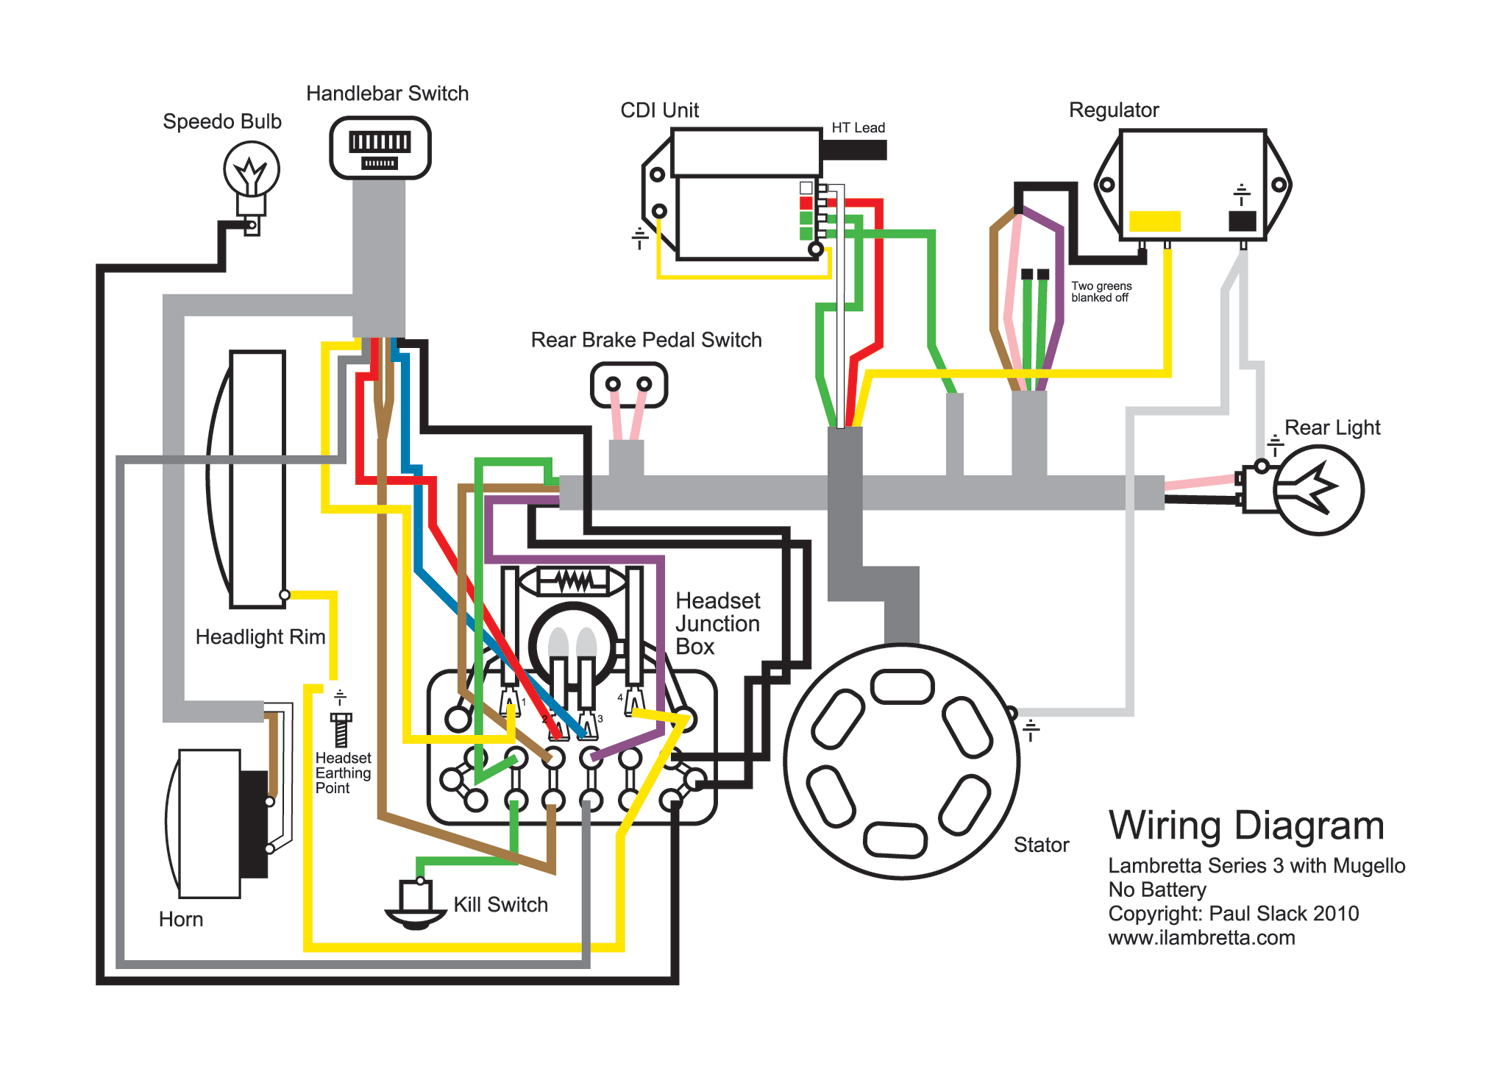 lambretta restoration wiring diagram for mugello 12 volt upgrade rh lambrettarestorations blogspot com 110-Volt Wire Welders 110 House Wiring